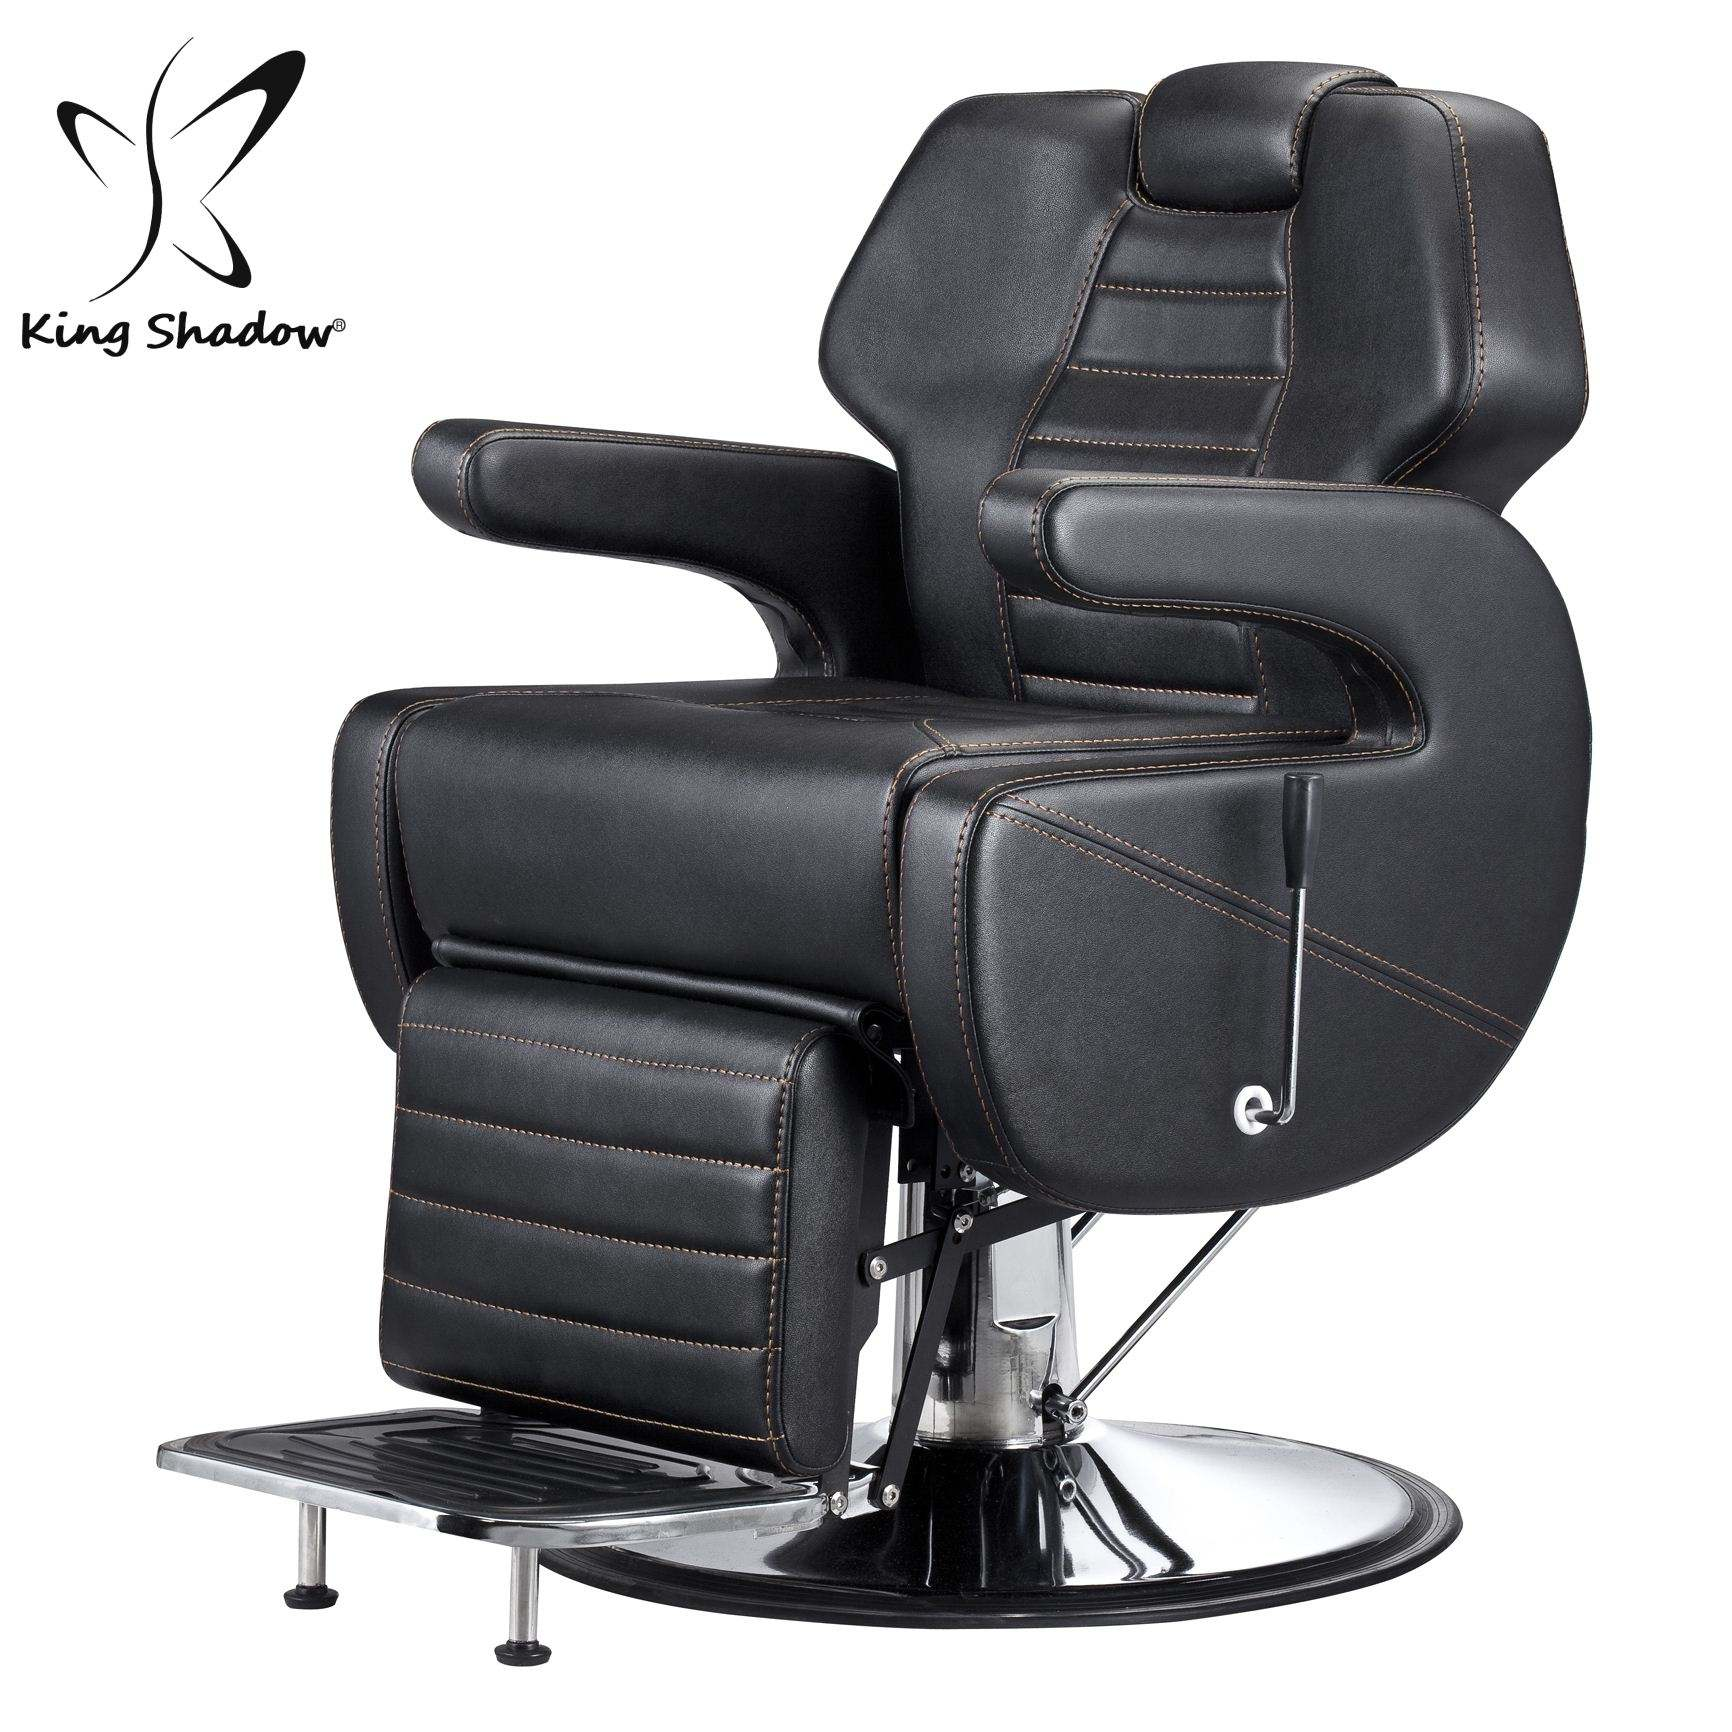 King shadow PU waterproof leather optional barber salon chair